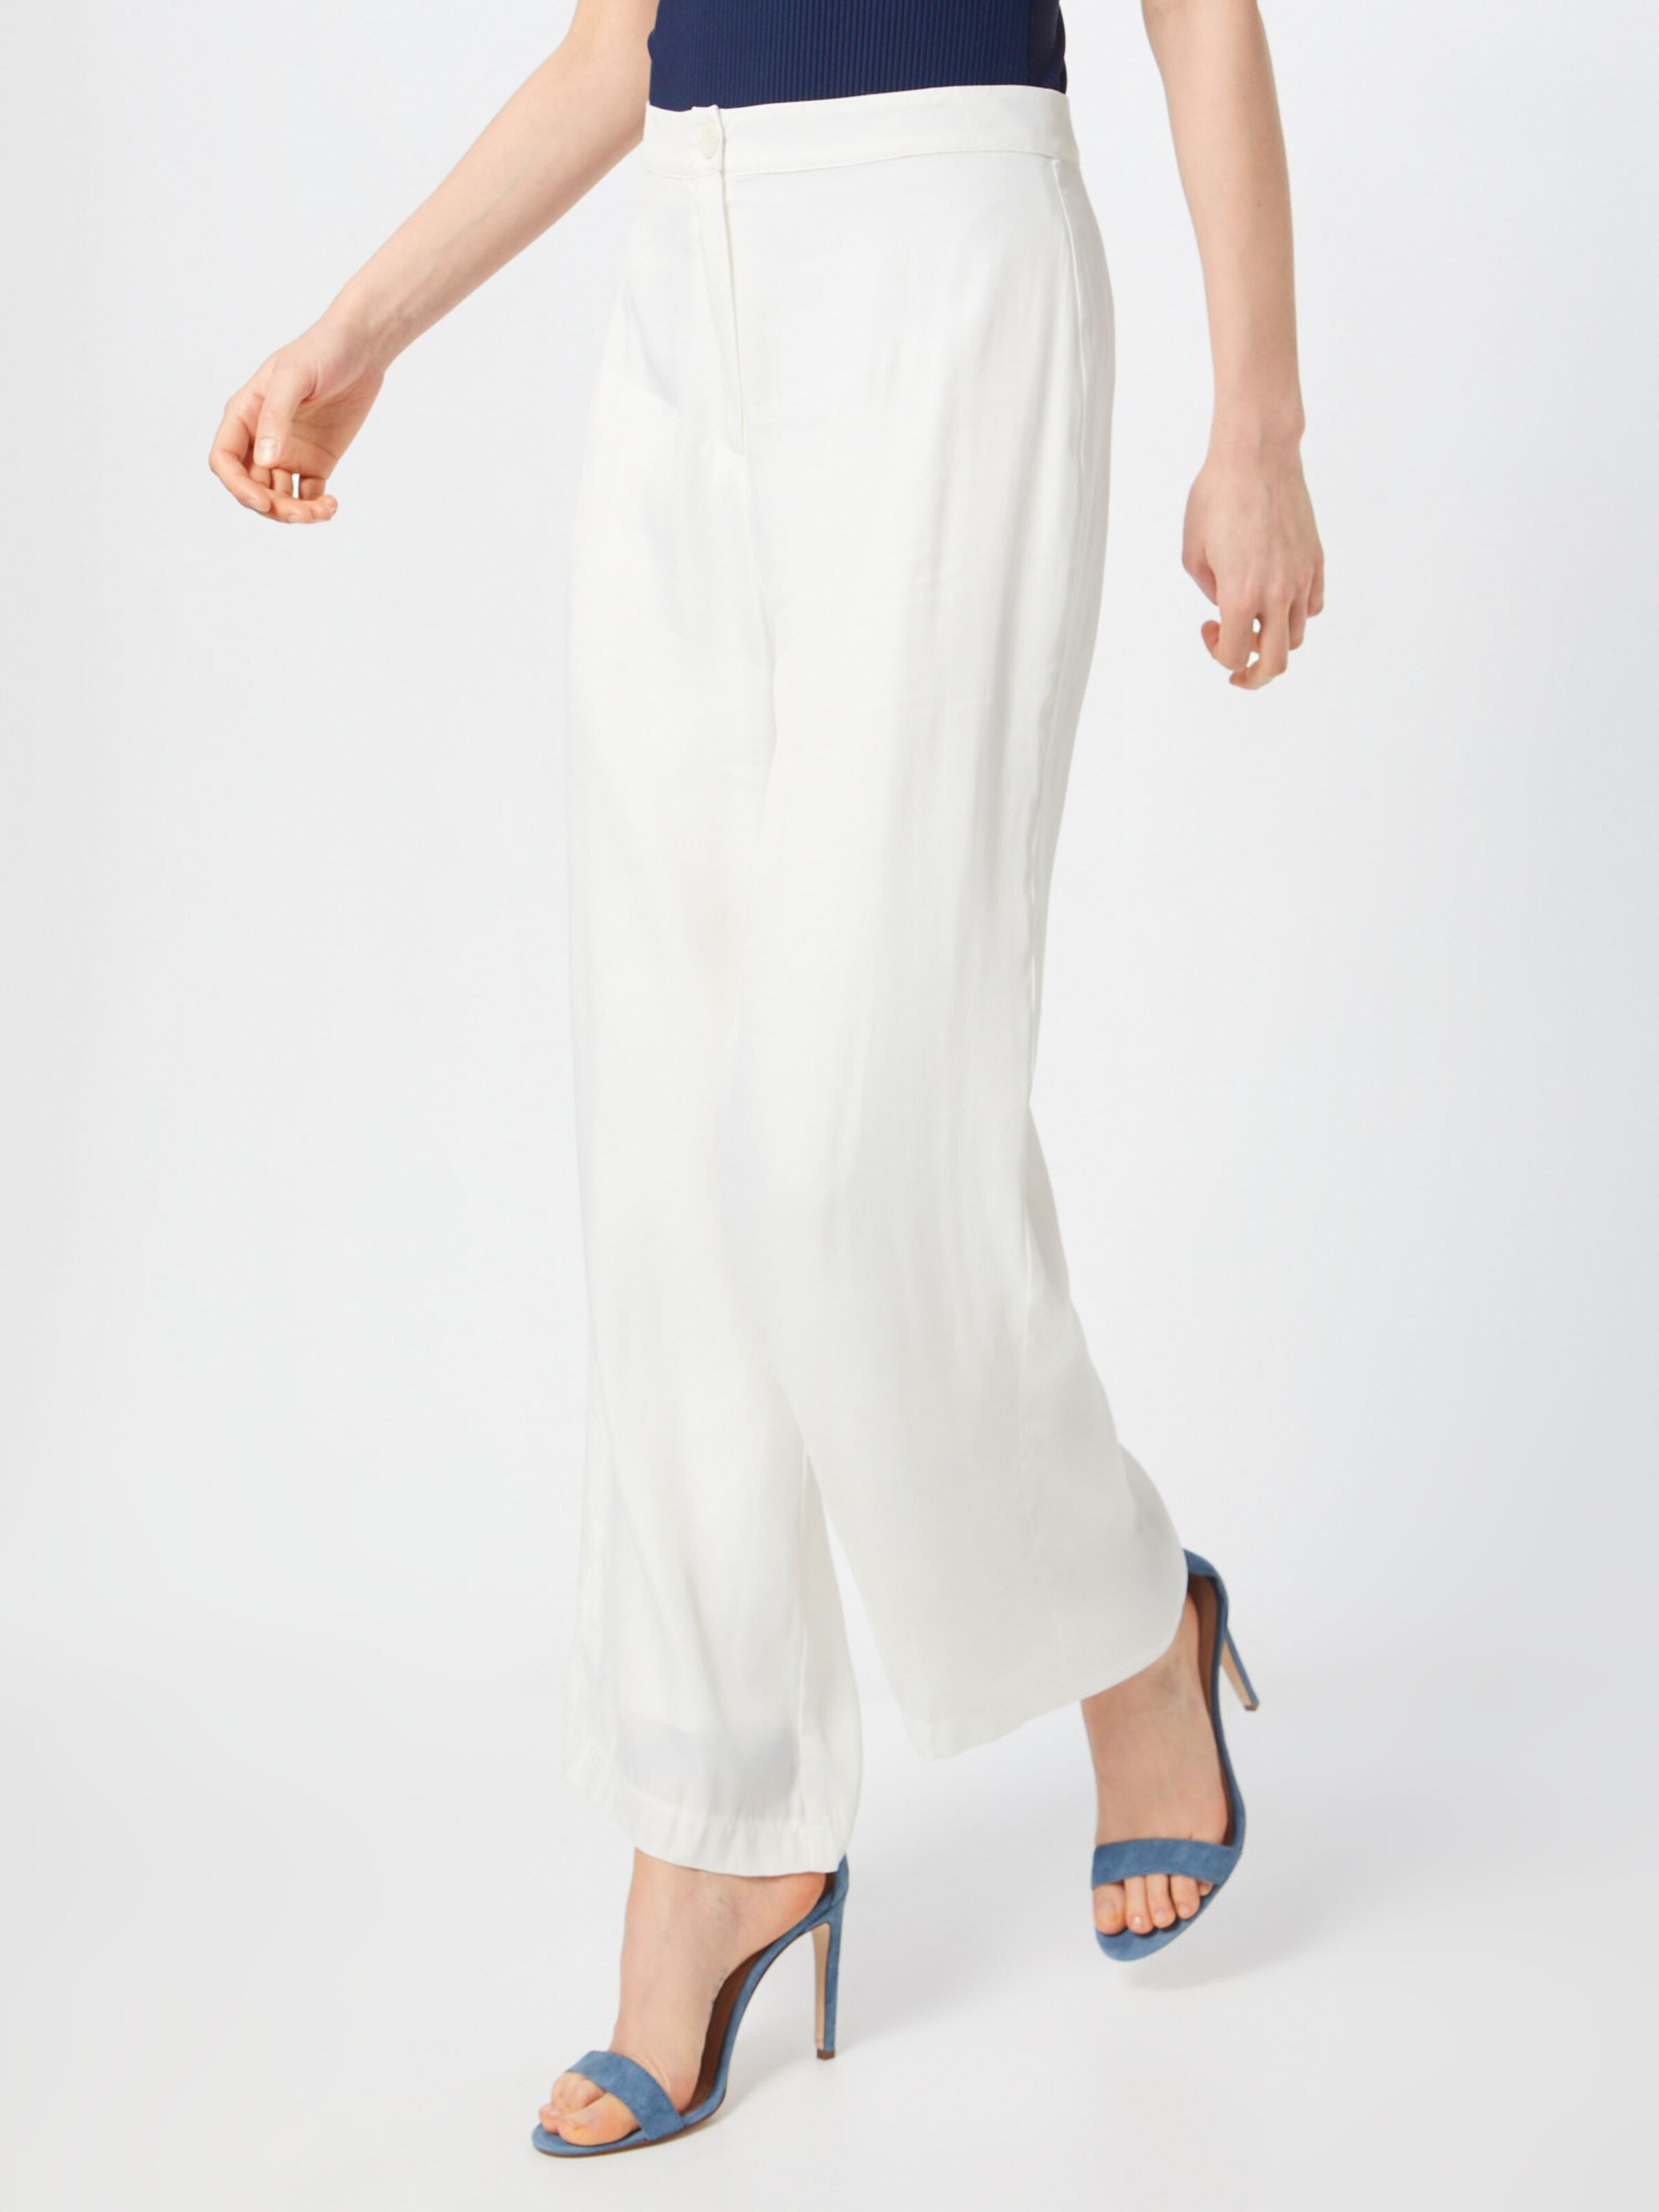 Offwhite Gercke By Hose Leger Lena In 'ina' 2WIE9DH